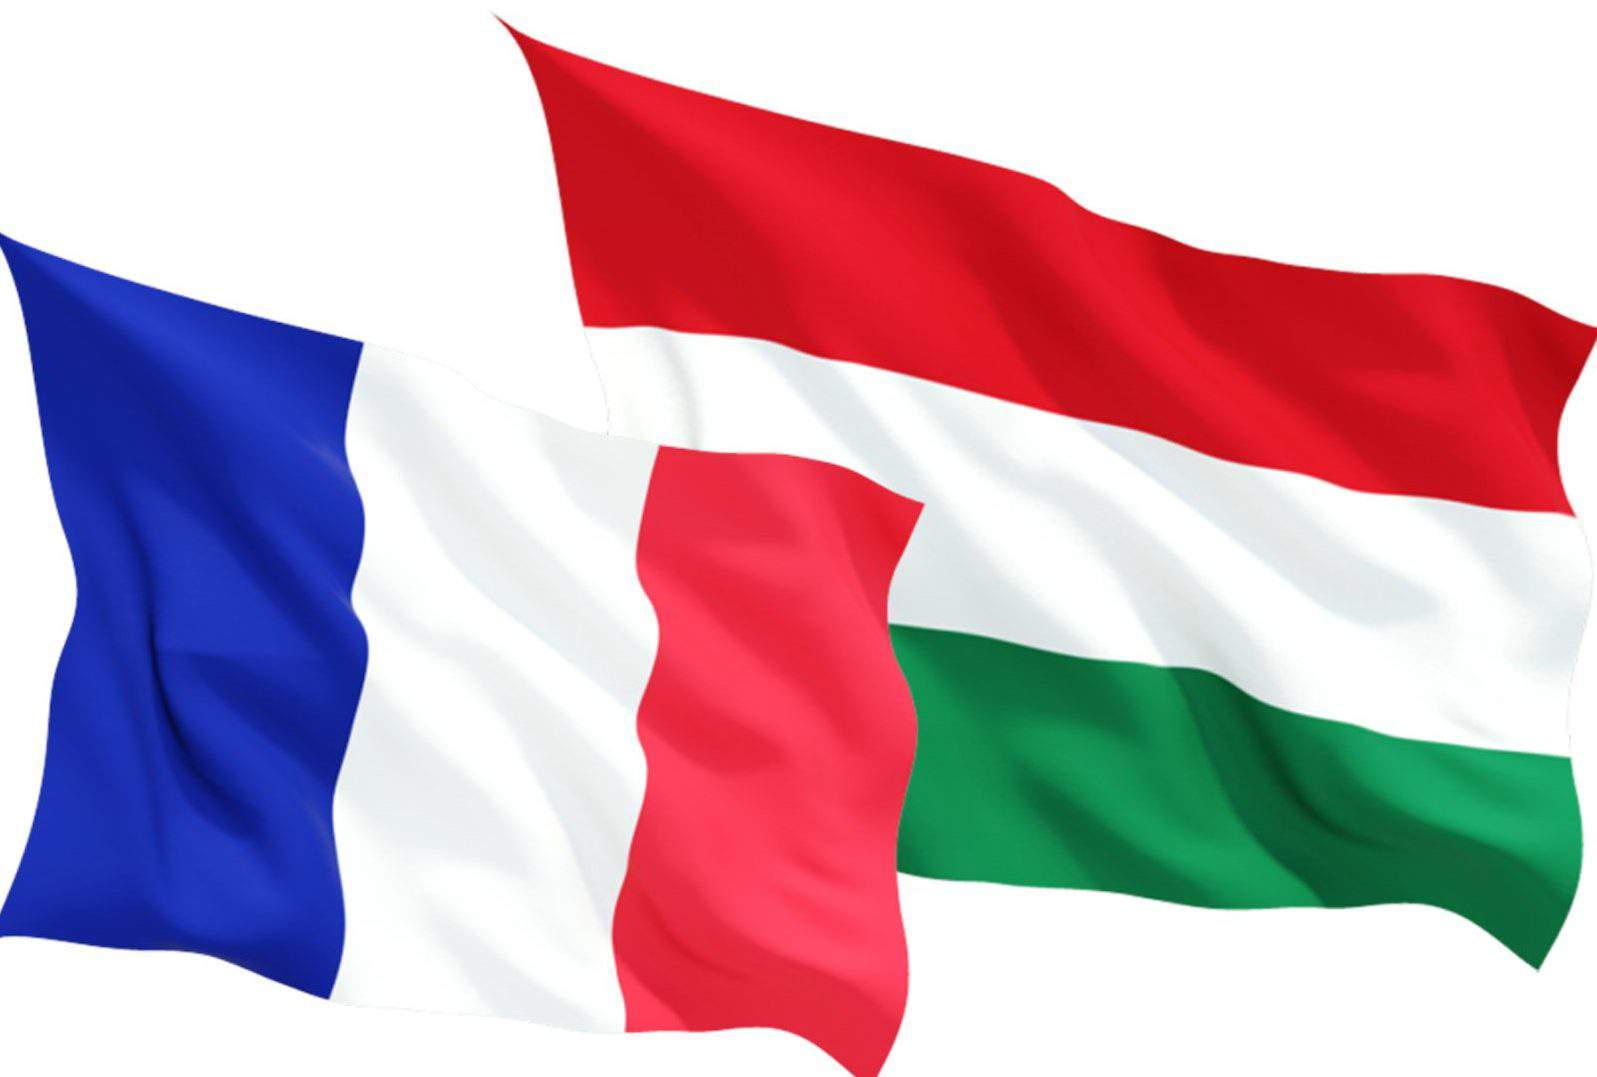 France Hungary flag cooperation